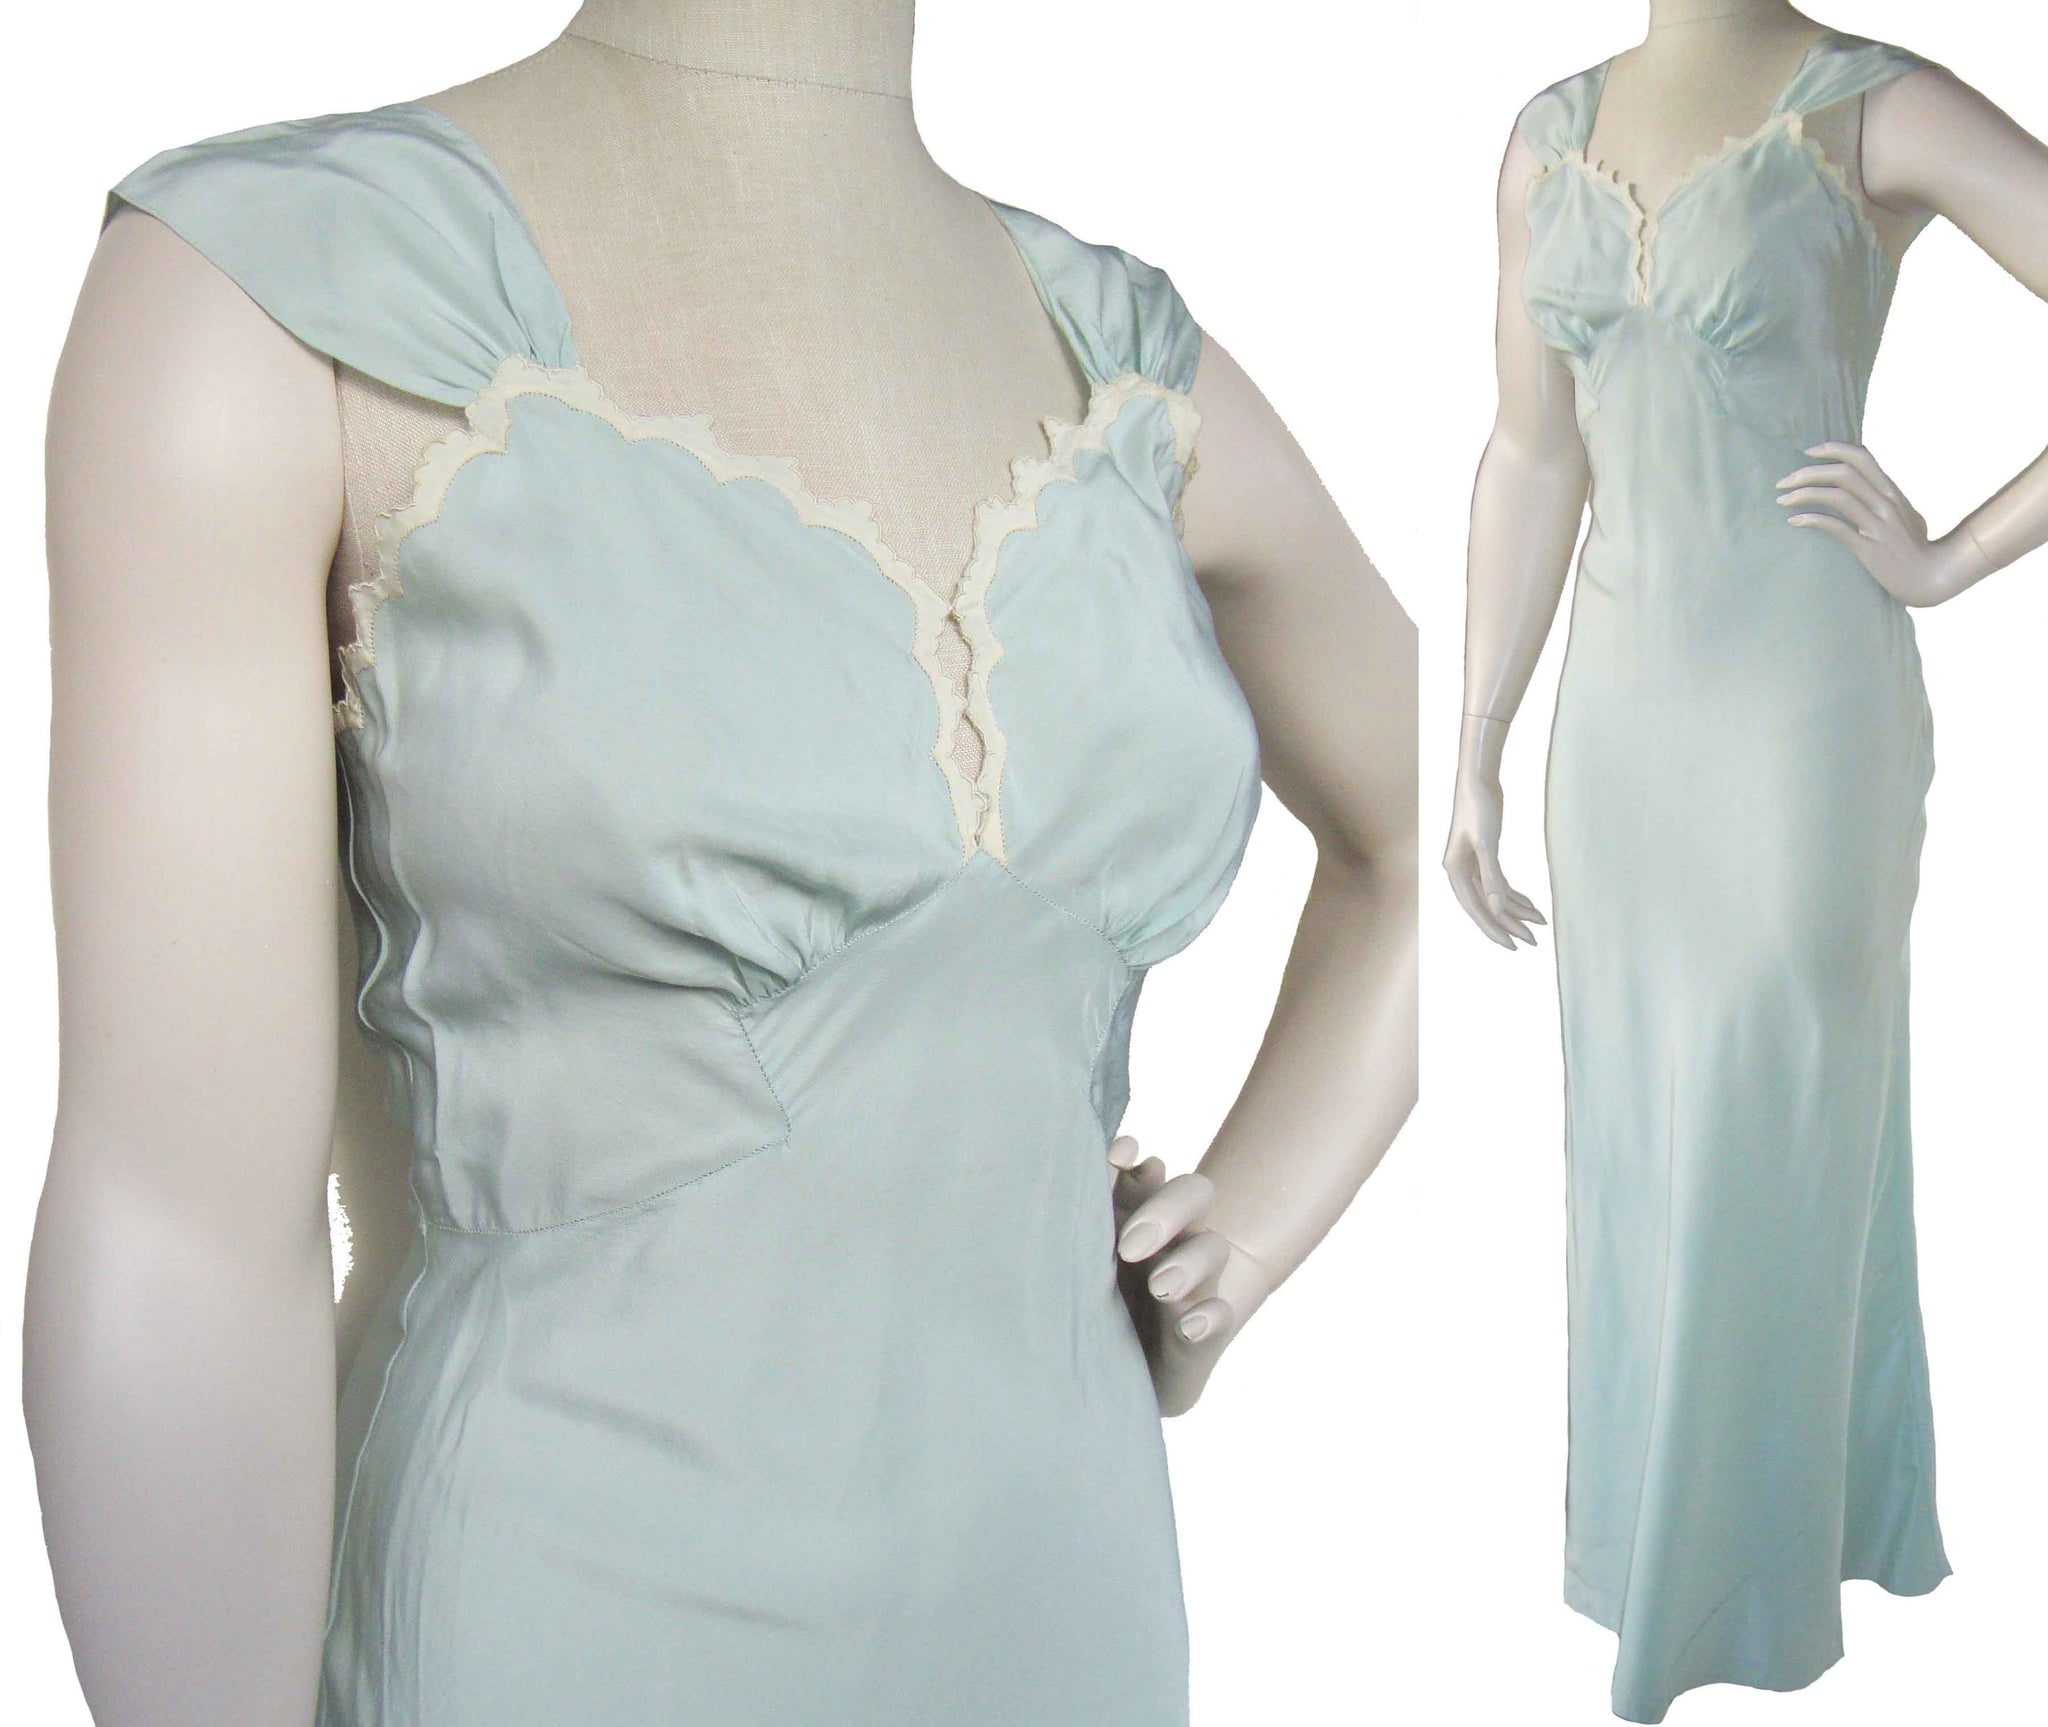 1940s Silk Nightgown Lingerie